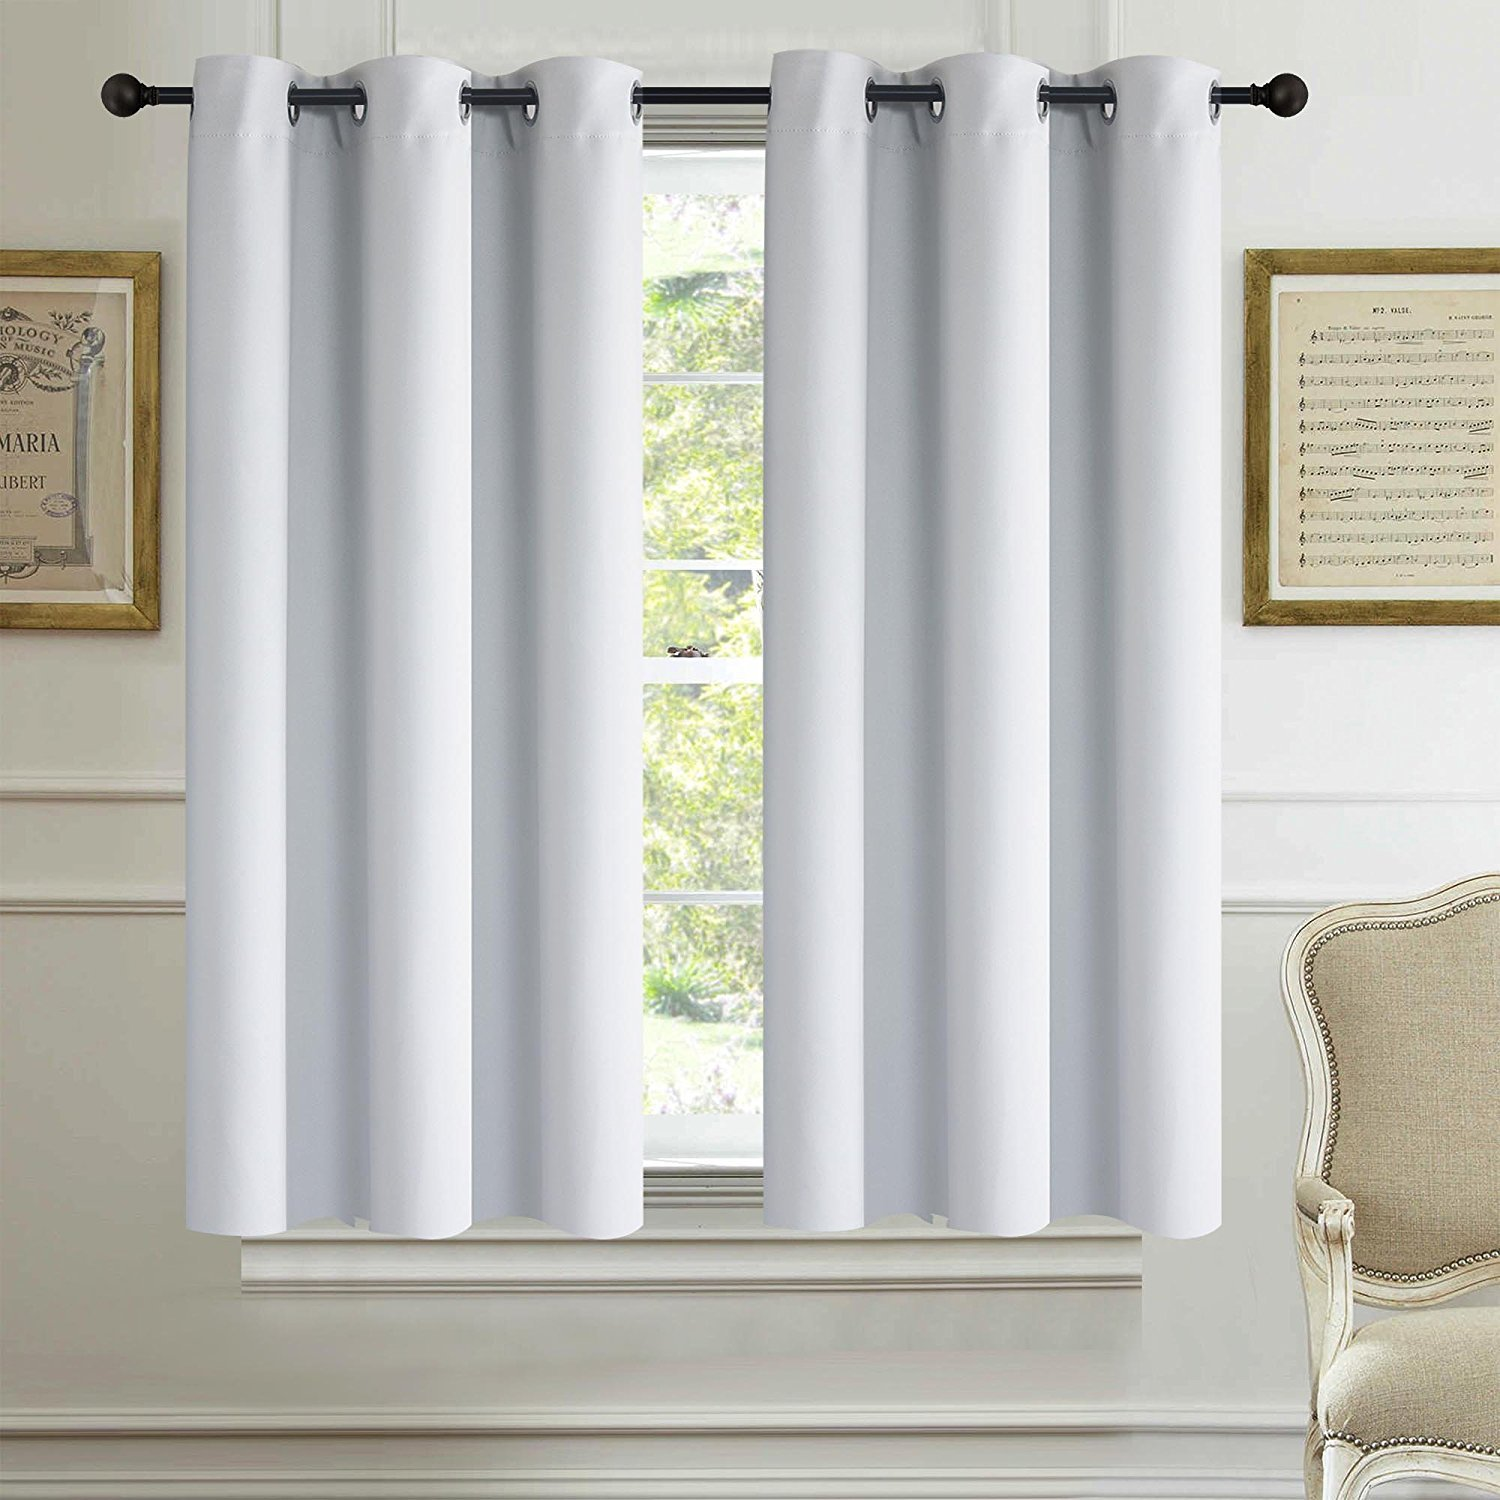 Alice Brown Solid Thermal Insulated Blackout Window Curtains/Draperies / Panels for Bedroom/Living Room/Sliding Glass Doors Top Fation Grommet (1 Panel,W42 x L63 –Inch,Greyish White)